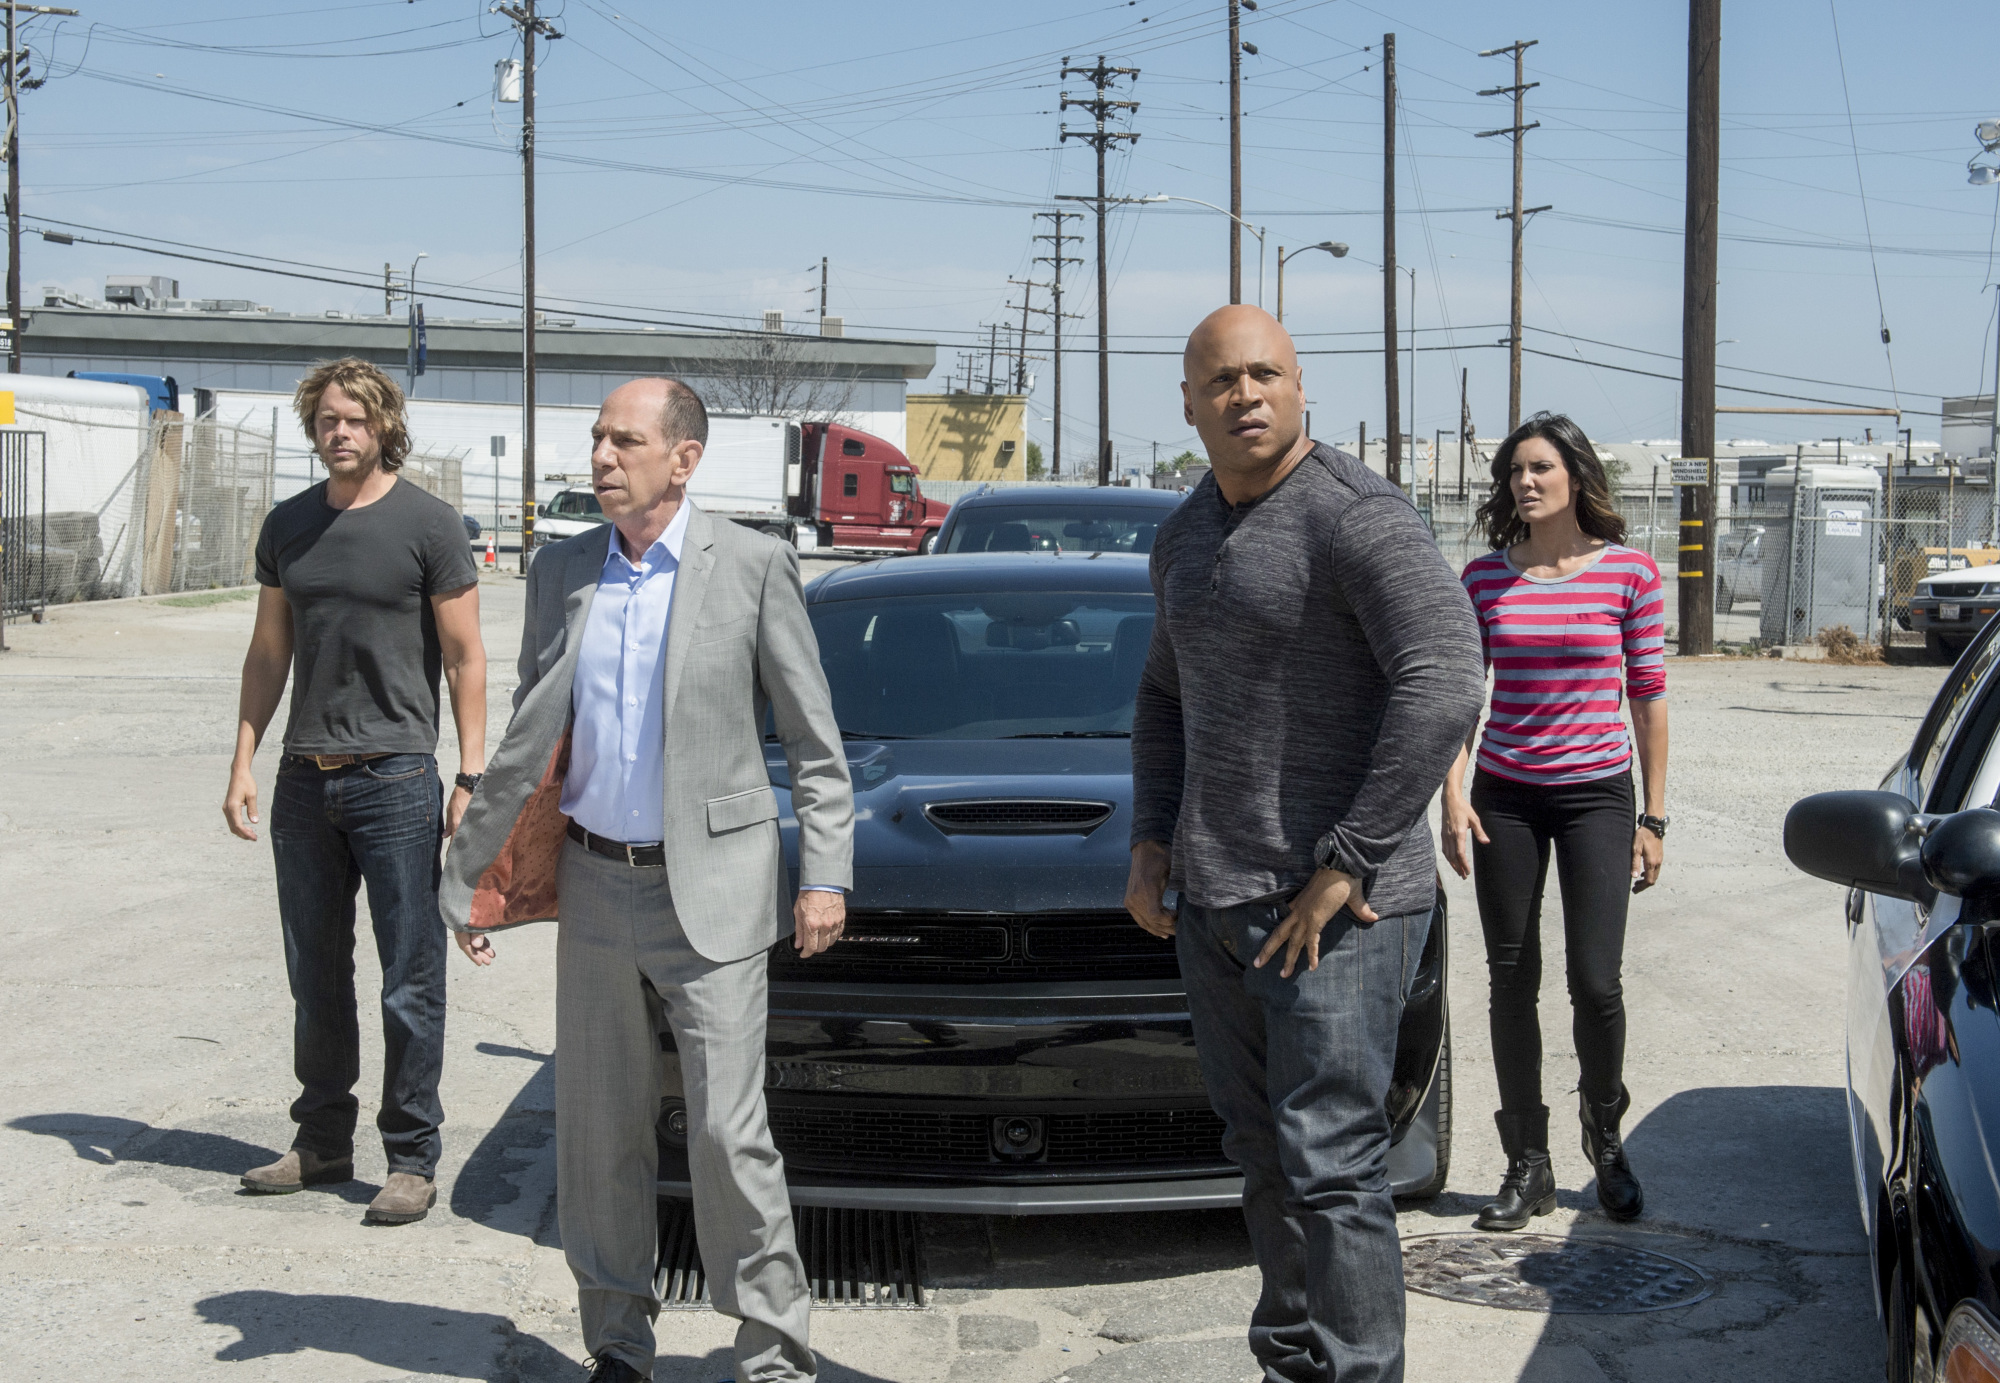 Eric Christian Olsen as LAPD Liaison Marty Deeks, Miguel Ferrer as NCIS Assistant Director Owen Granger, LL COOL J as Special Agent Sam Hanna, and Daniela Ruah as Special Agent Kensi Blye.